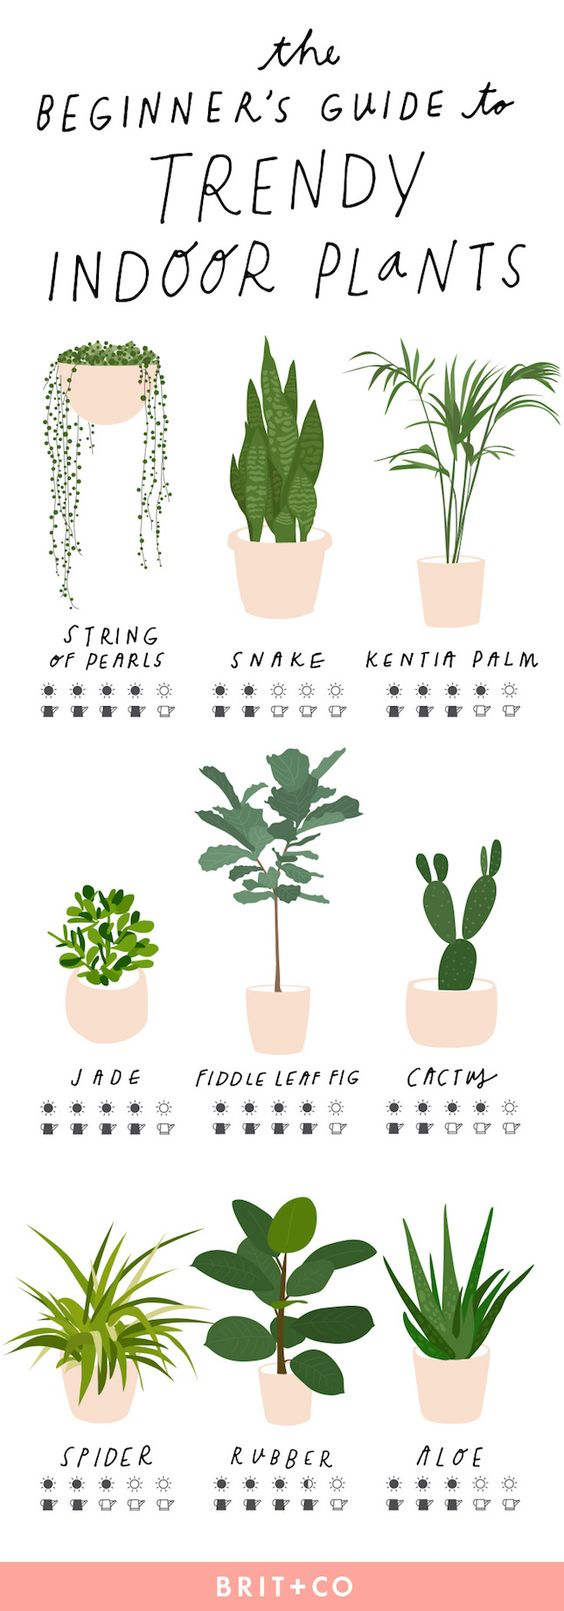 House plants guide pictures